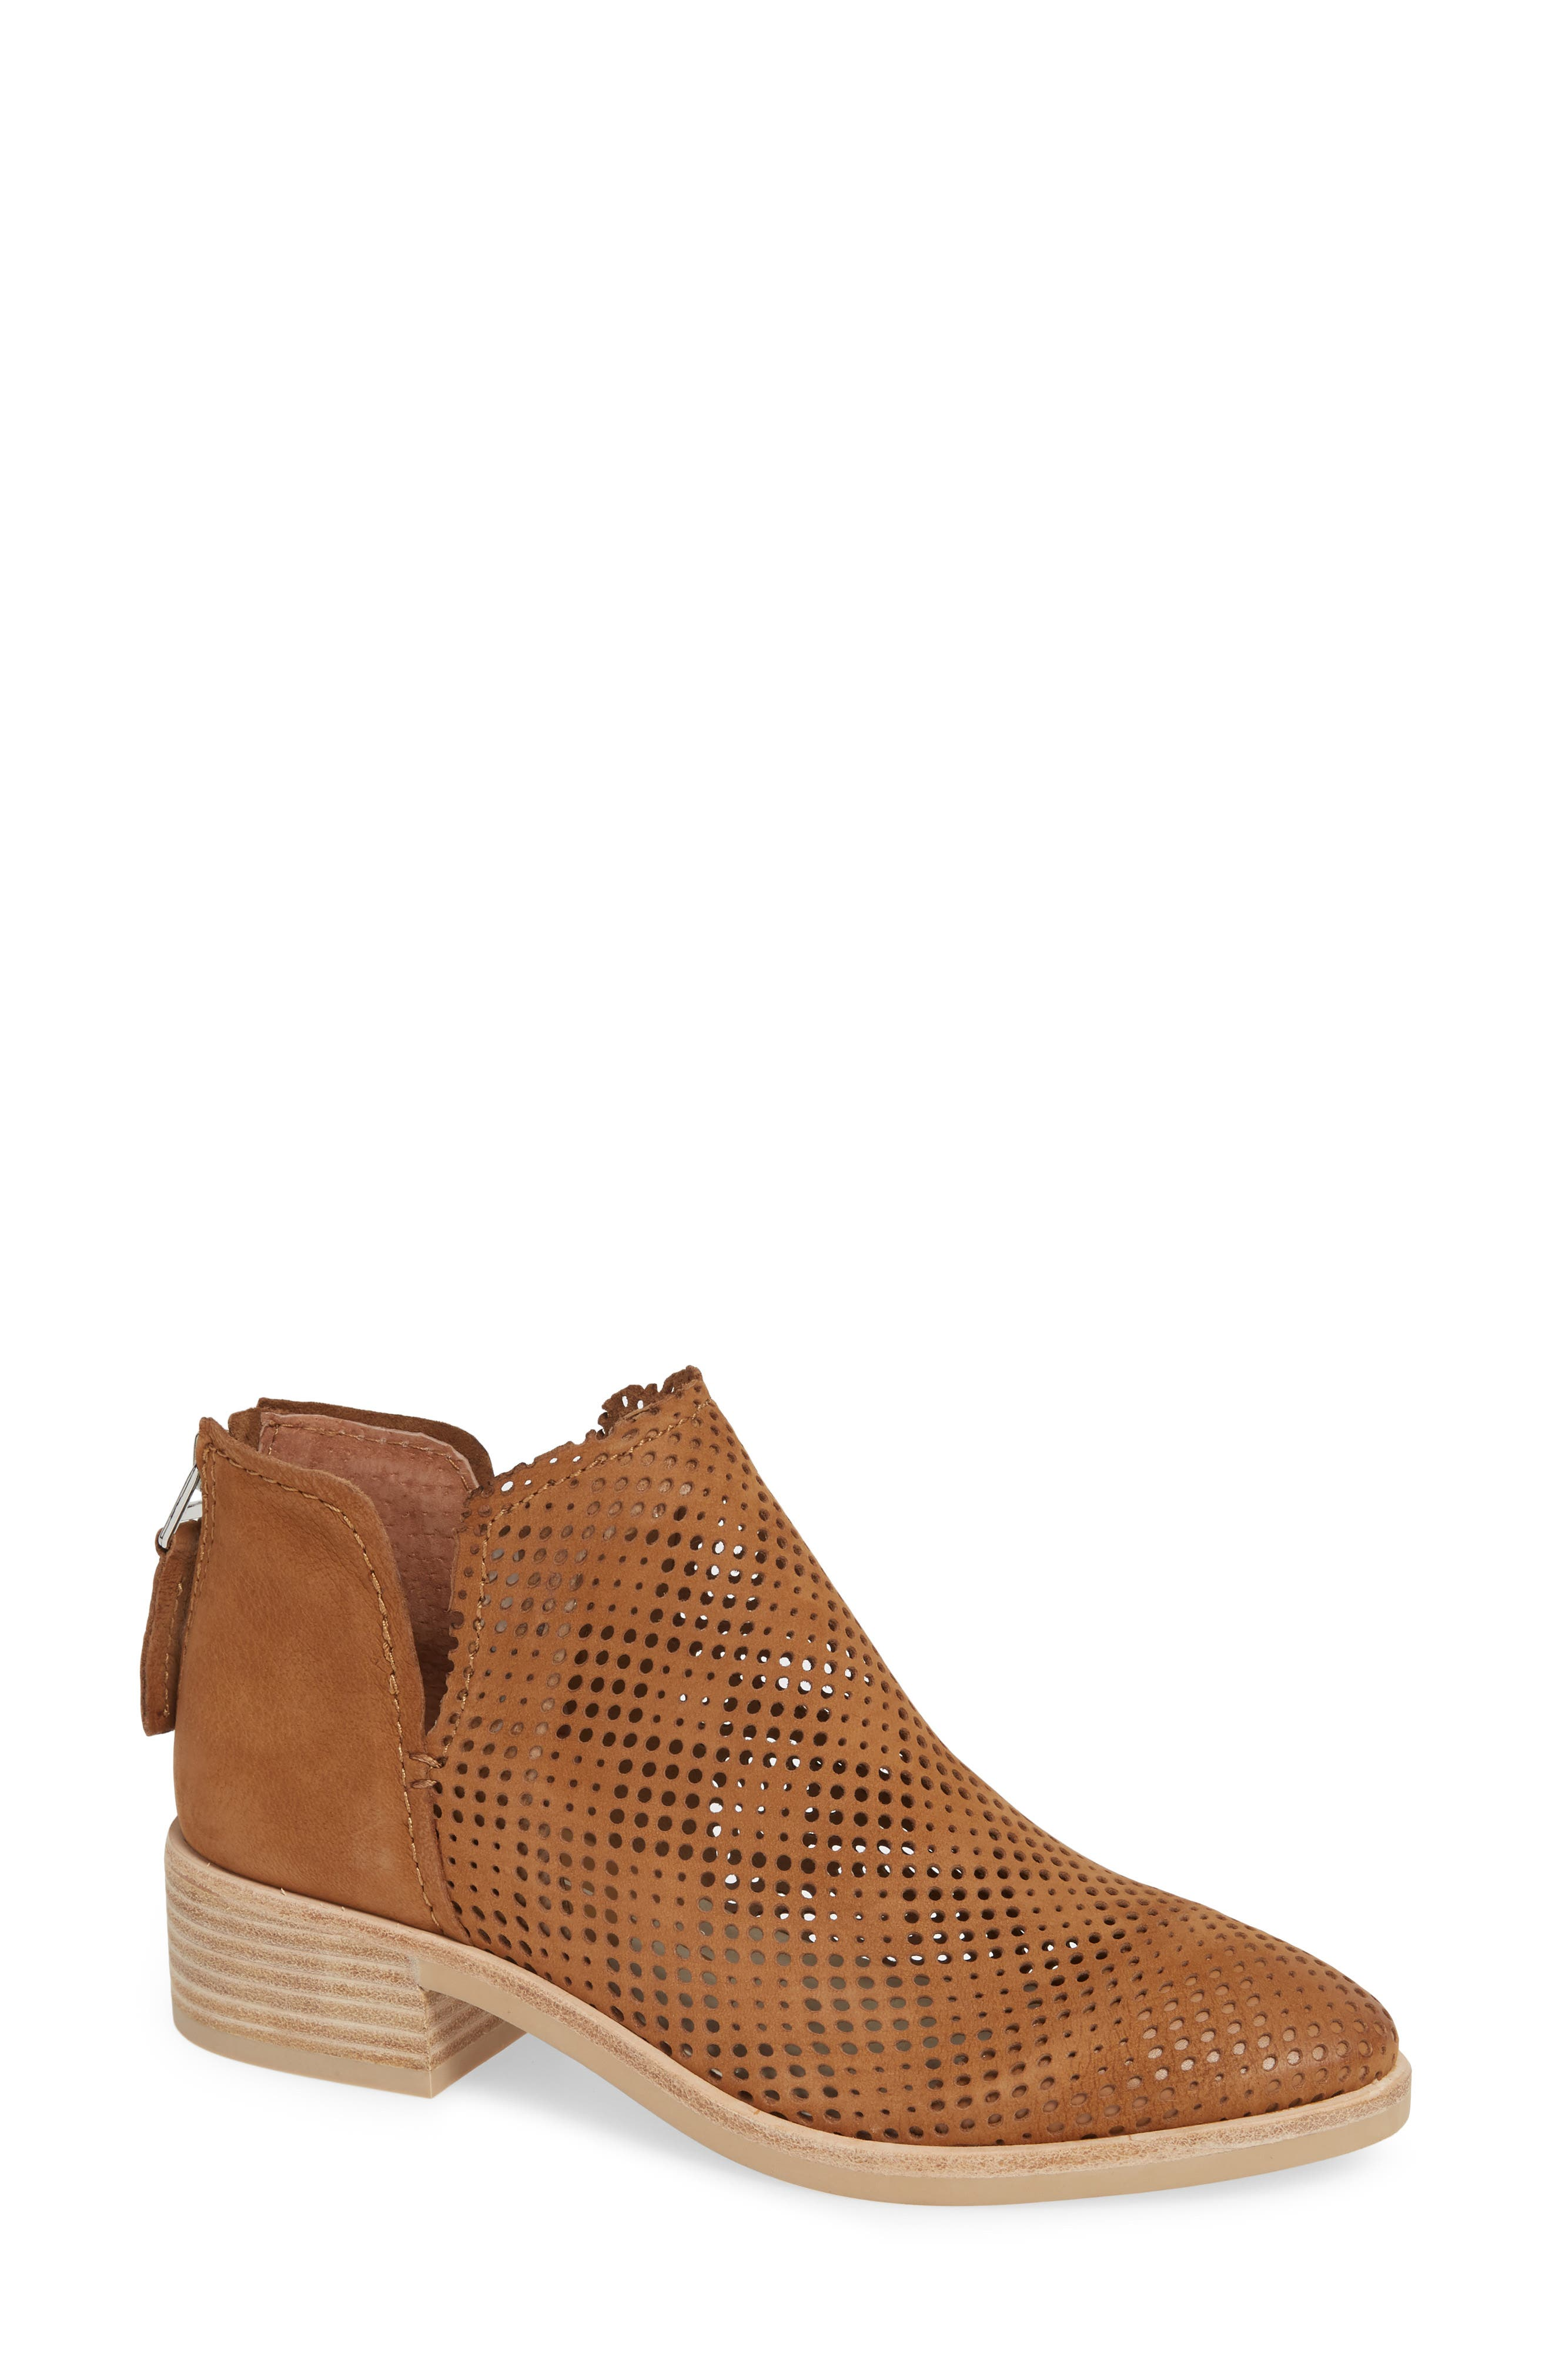 Dolce Vita Tauris Perforated Bootie, Brown